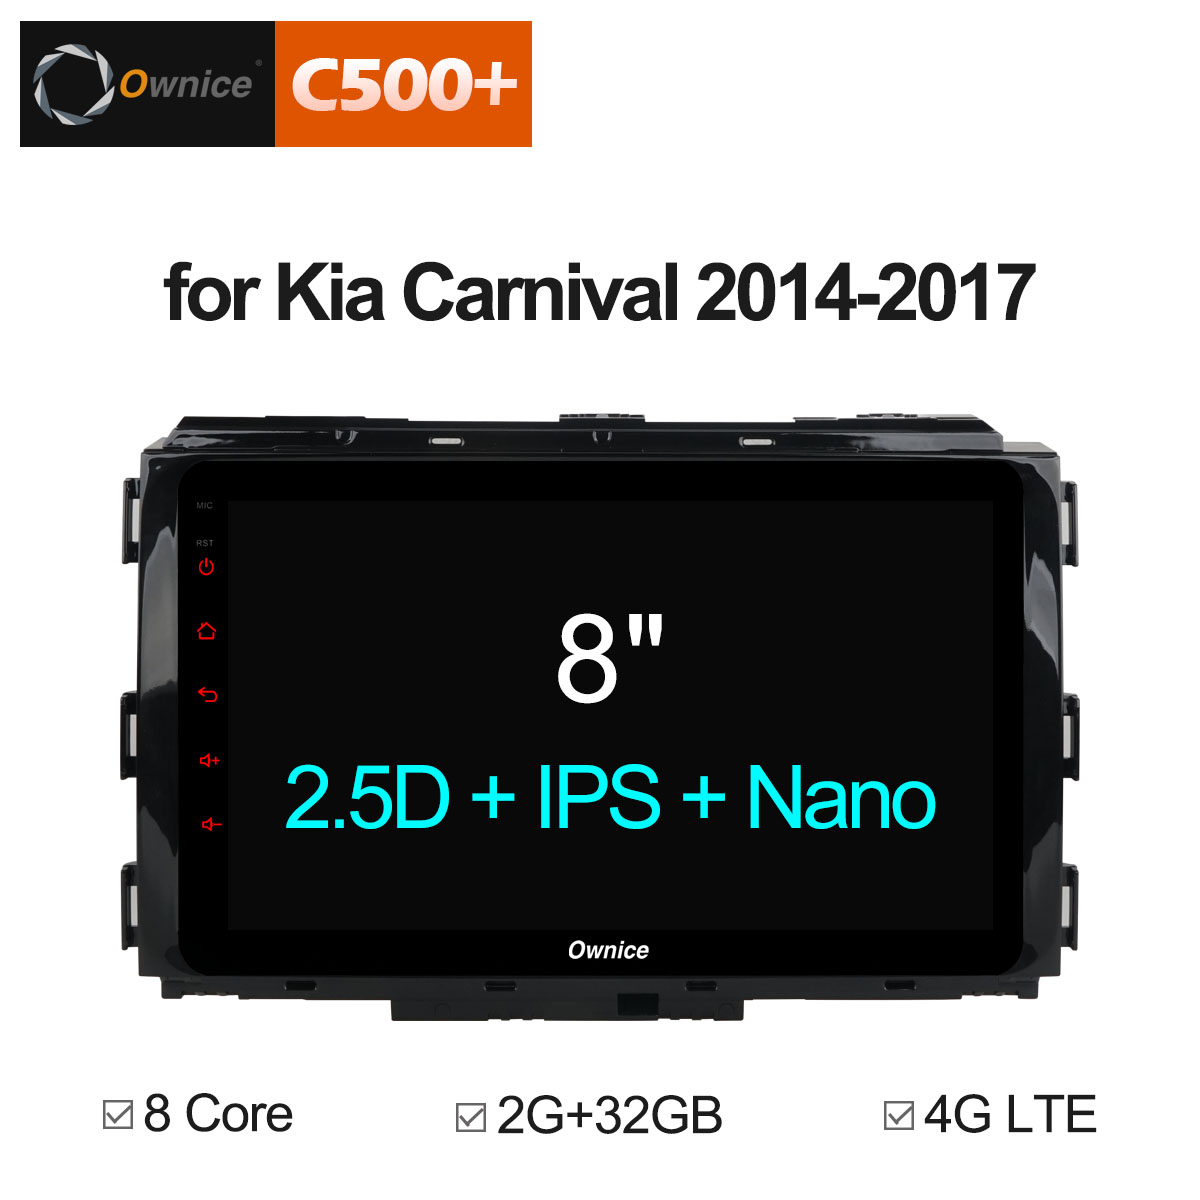 Ownice C500+ G10 8 Core Android 8.1 Car DVD Player GPS For KIA Carnival 2014 2015 2016 2017 Autostereo radio Multimedia DAB+ DVR special dvr without battery for ownice c500 car dvd and the dvd manufacture date must after 10th of april 2017 included 10th